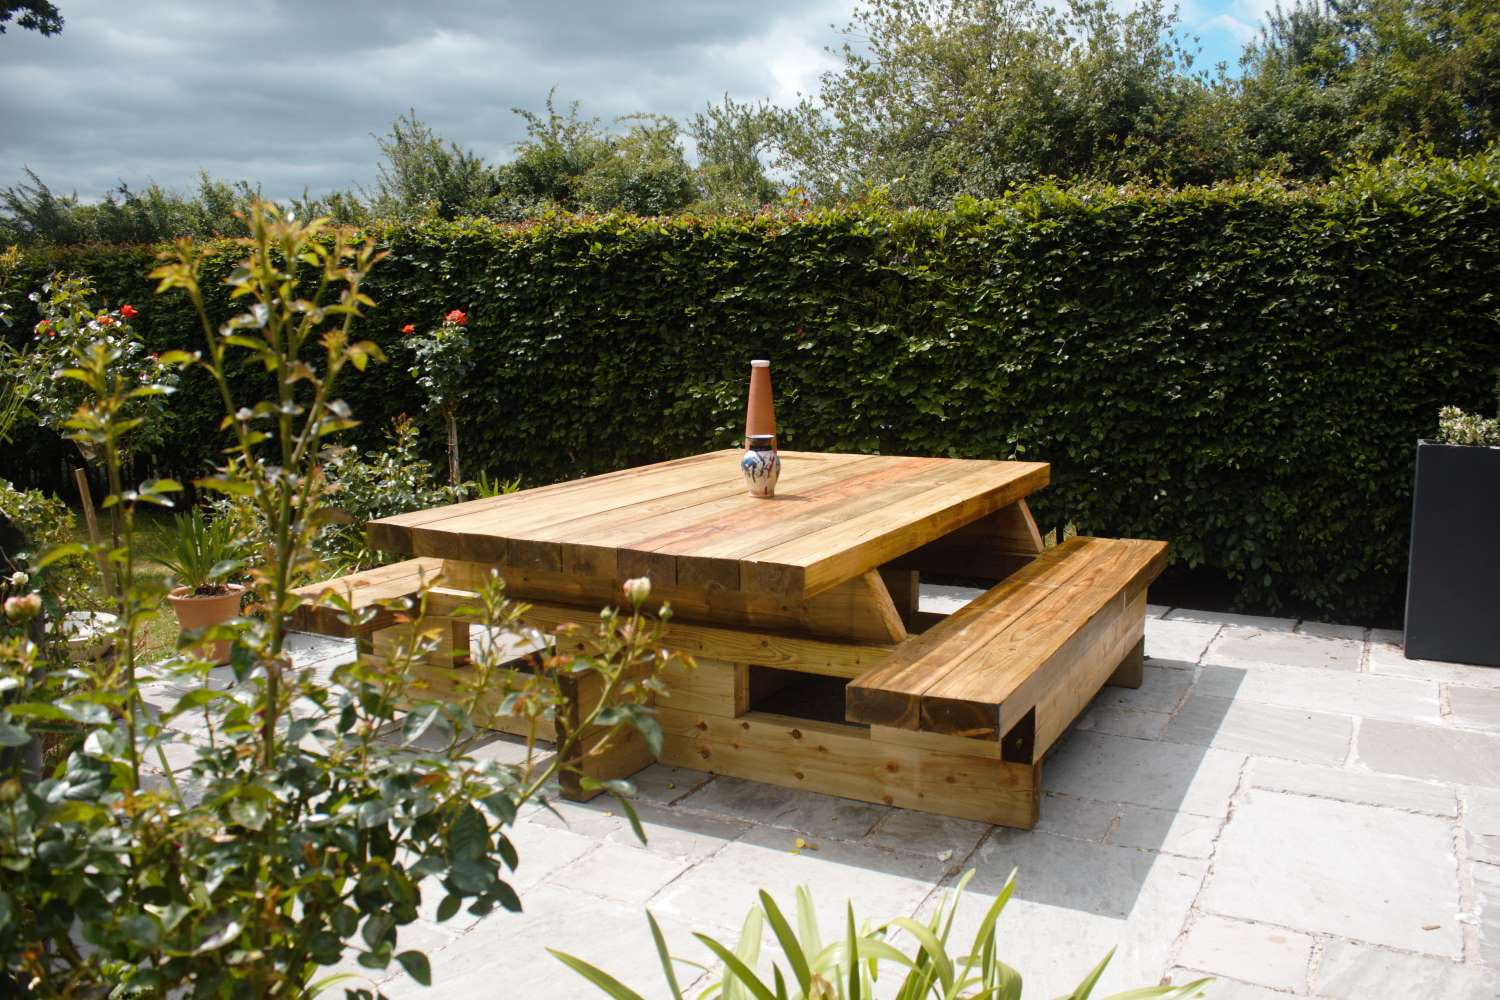 Outdoor Living structures - Bespoke Outdoors Living Ltd on Bespoke Outdoor Living id=95453